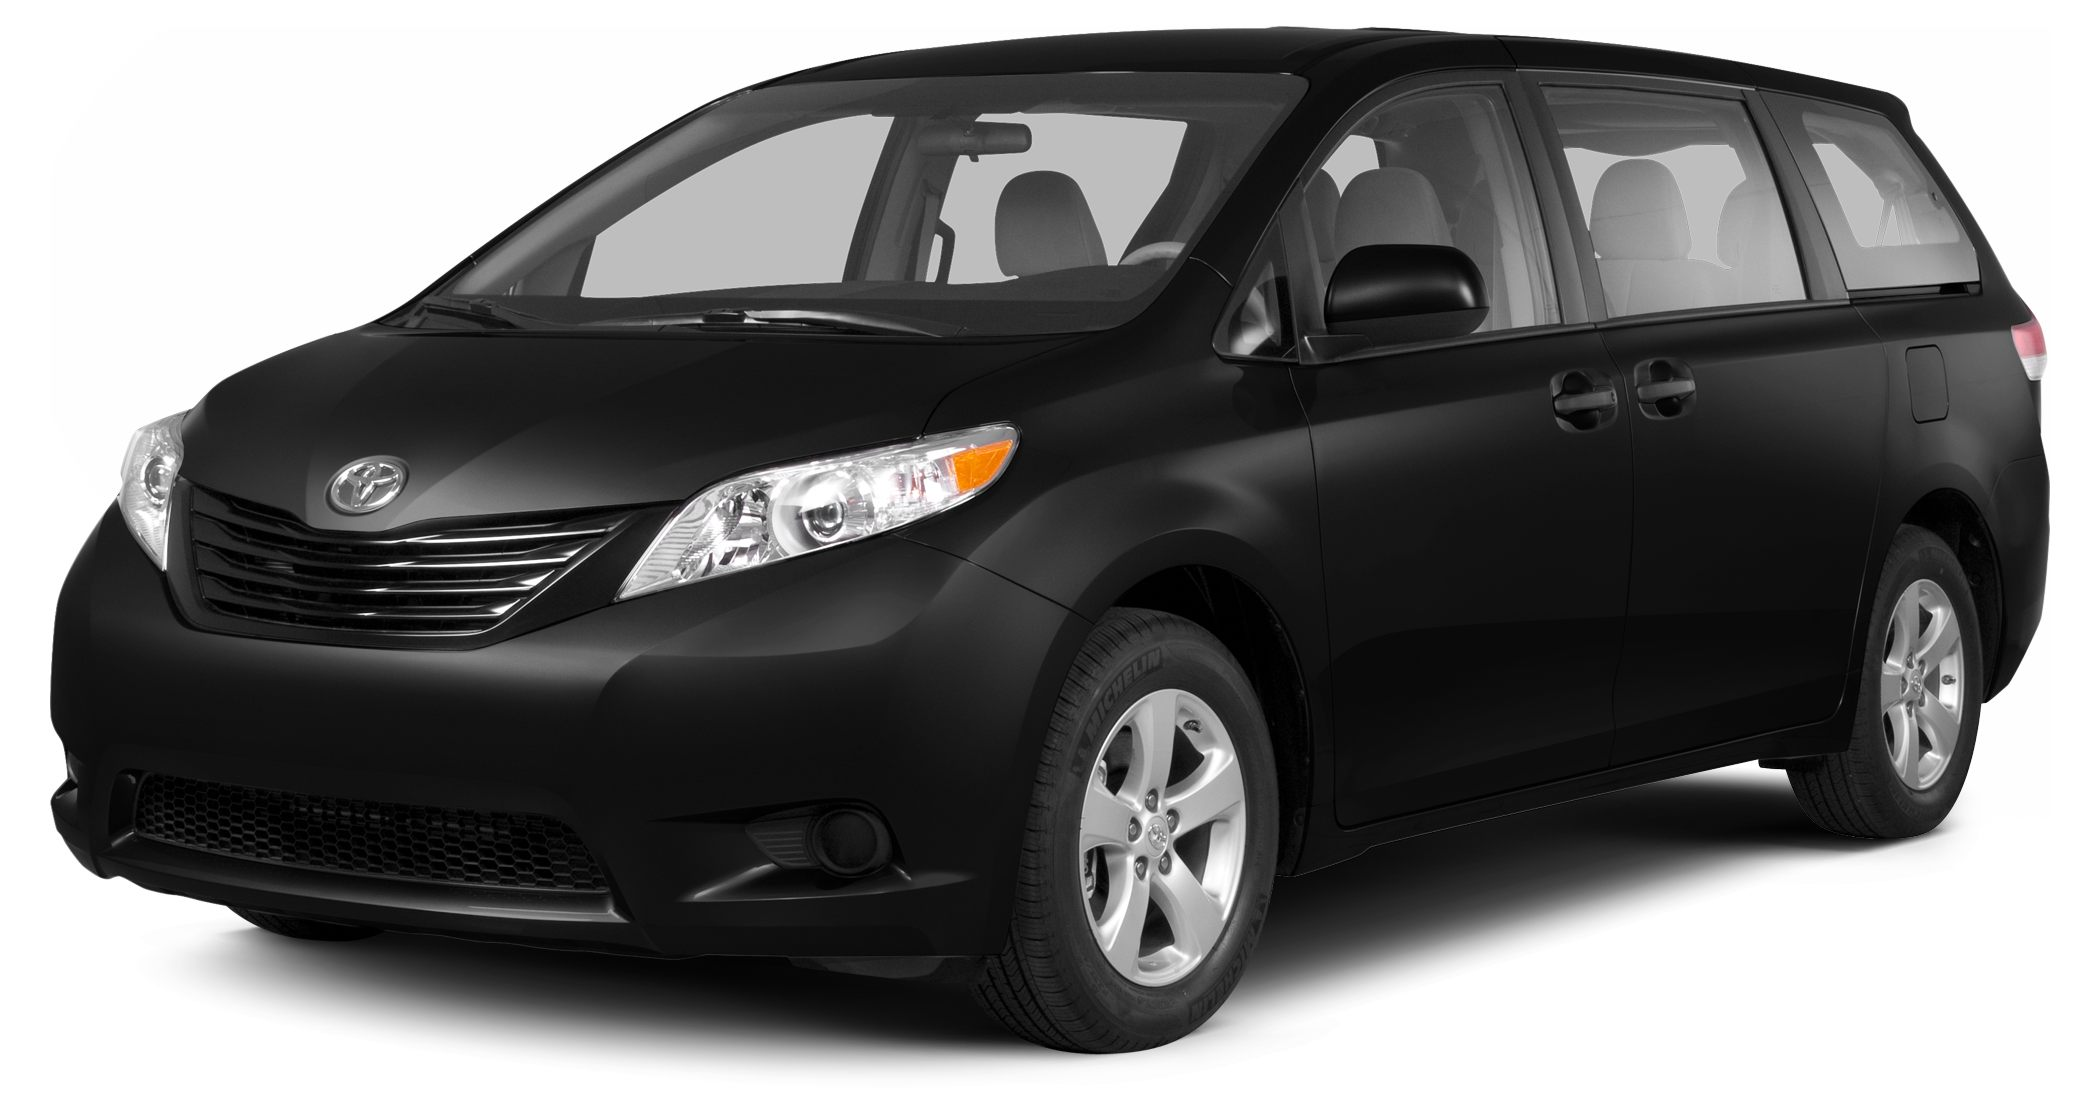 2013 Toyota Sienna SE 8 Passenger My My My What a deal What a great deal When was the last ti